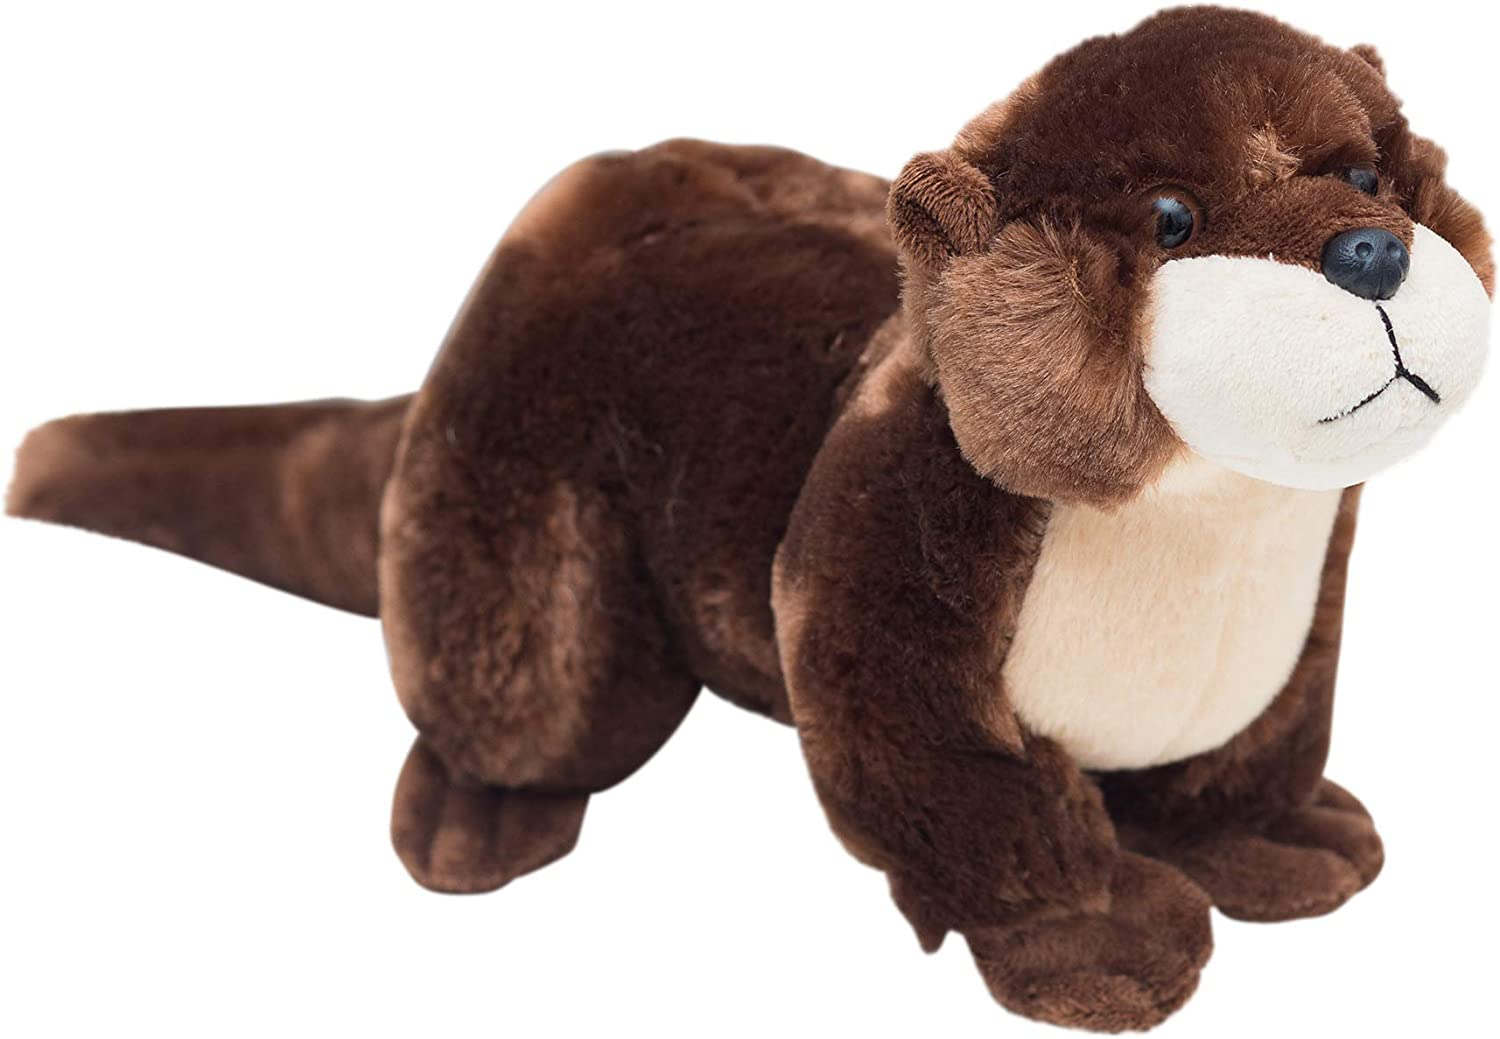 """Edgewood Toys 16"""" River Otter Stuffed Animal - Ultra Soft Stuffed Otter Plush with Superior Softness – Perfect Size Otter Plush Toy for Kids - Easy to Carry & Snuggle - Realistic & Cute - Ages 3+"""